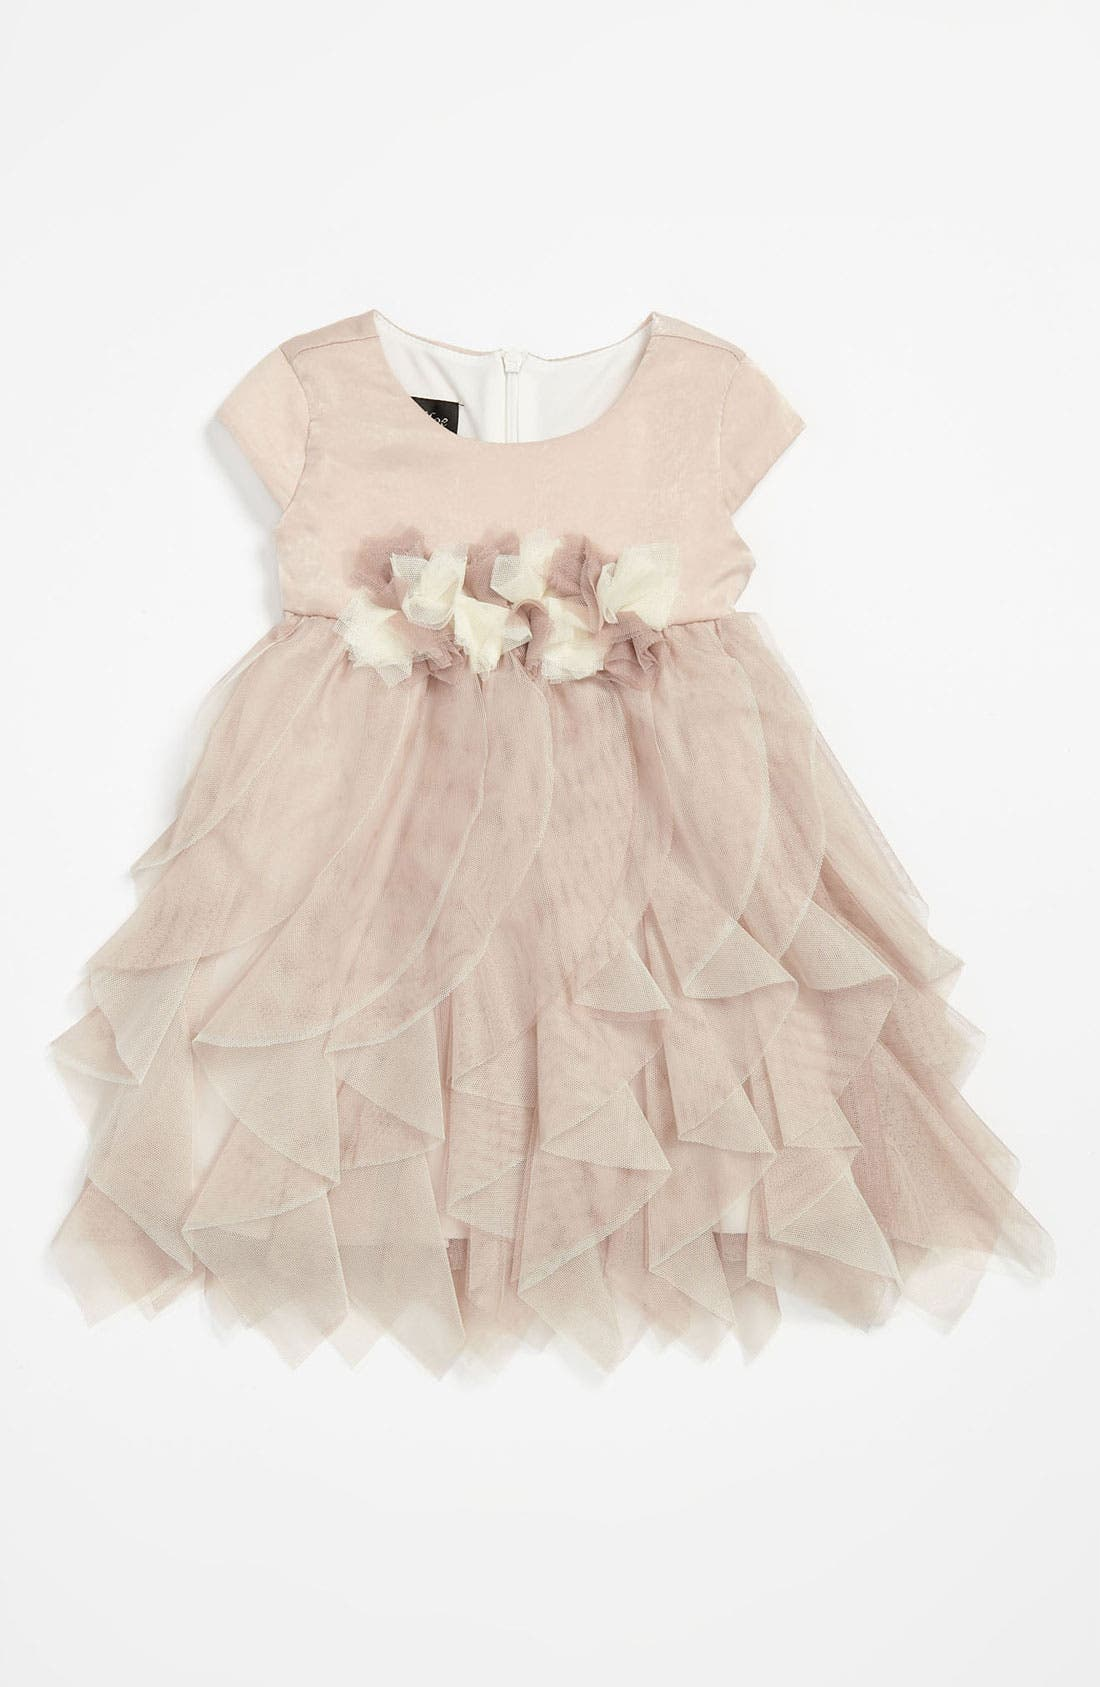 Main Image - Isobella & Chloe 'Pixie' Dress (Toddler)